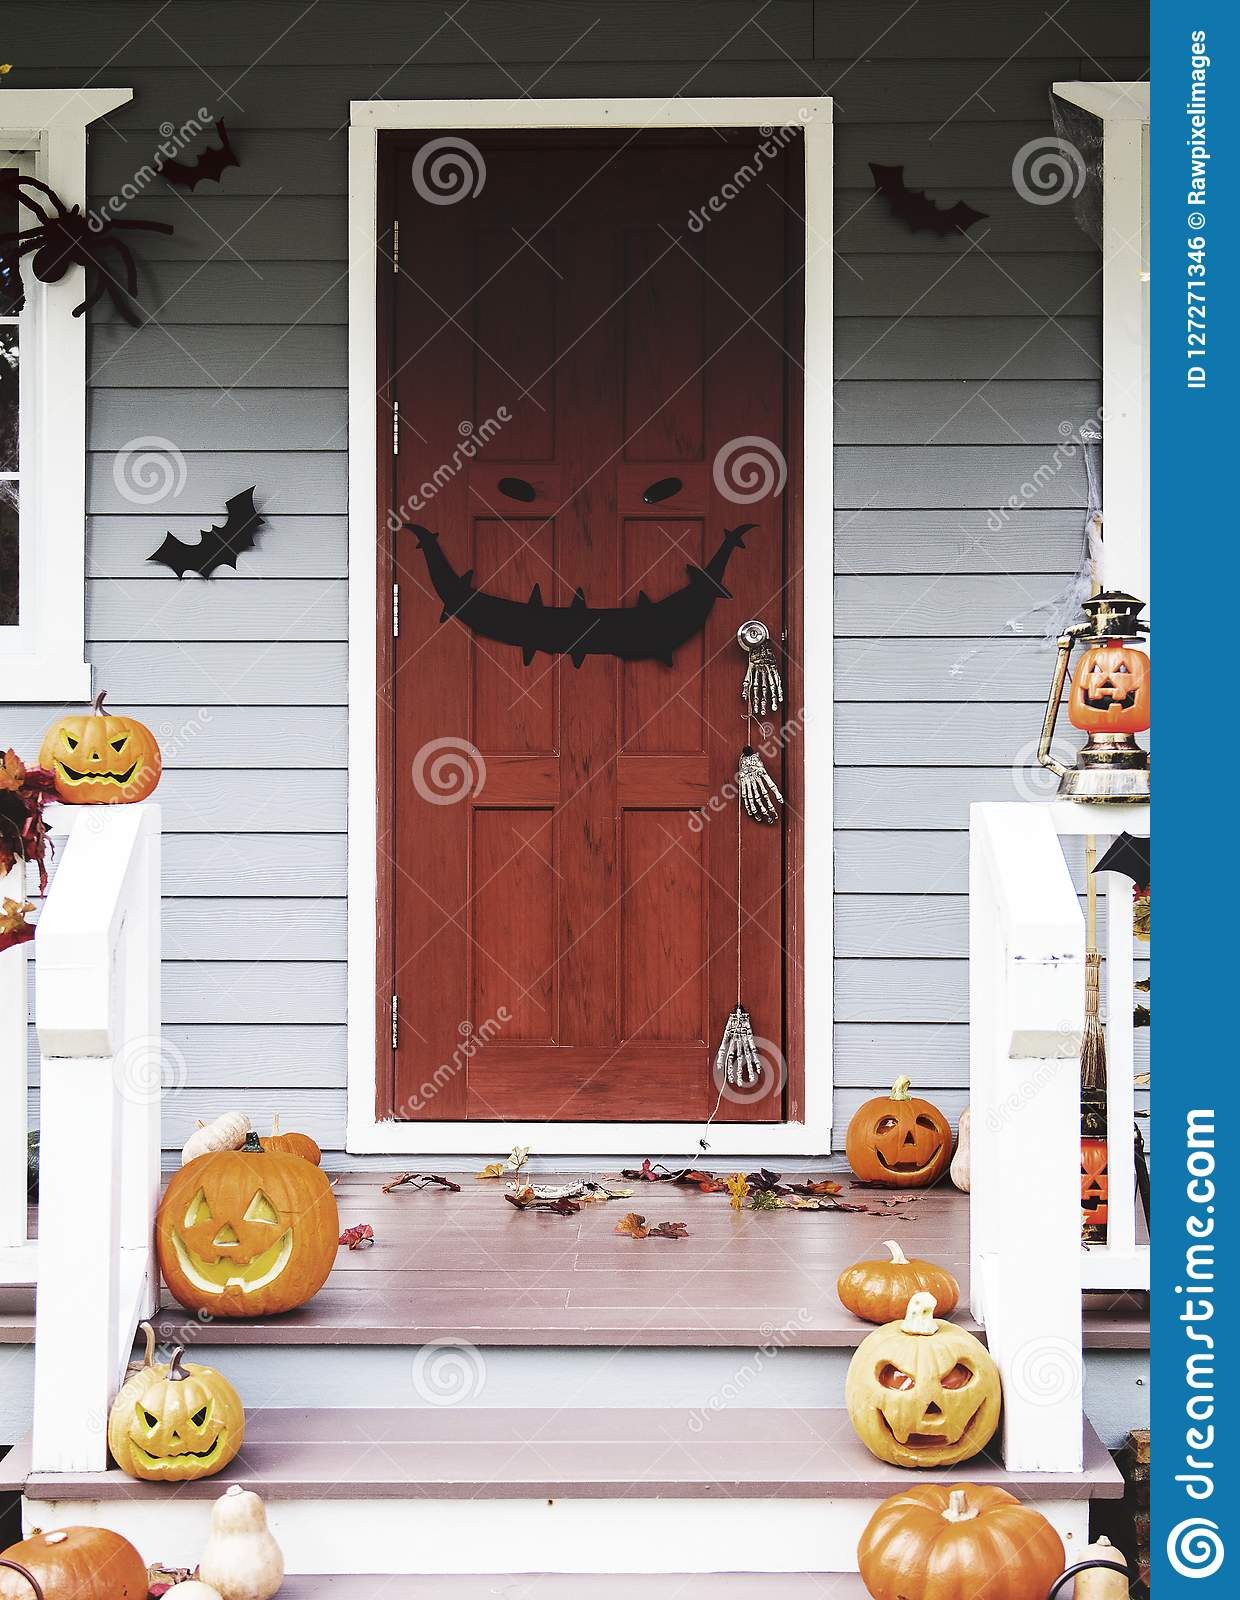 Halloween Pumpkins And Decorations Outside A House Stock Photo - Use-pumpkins-to-decorate-your-house-for-halloween